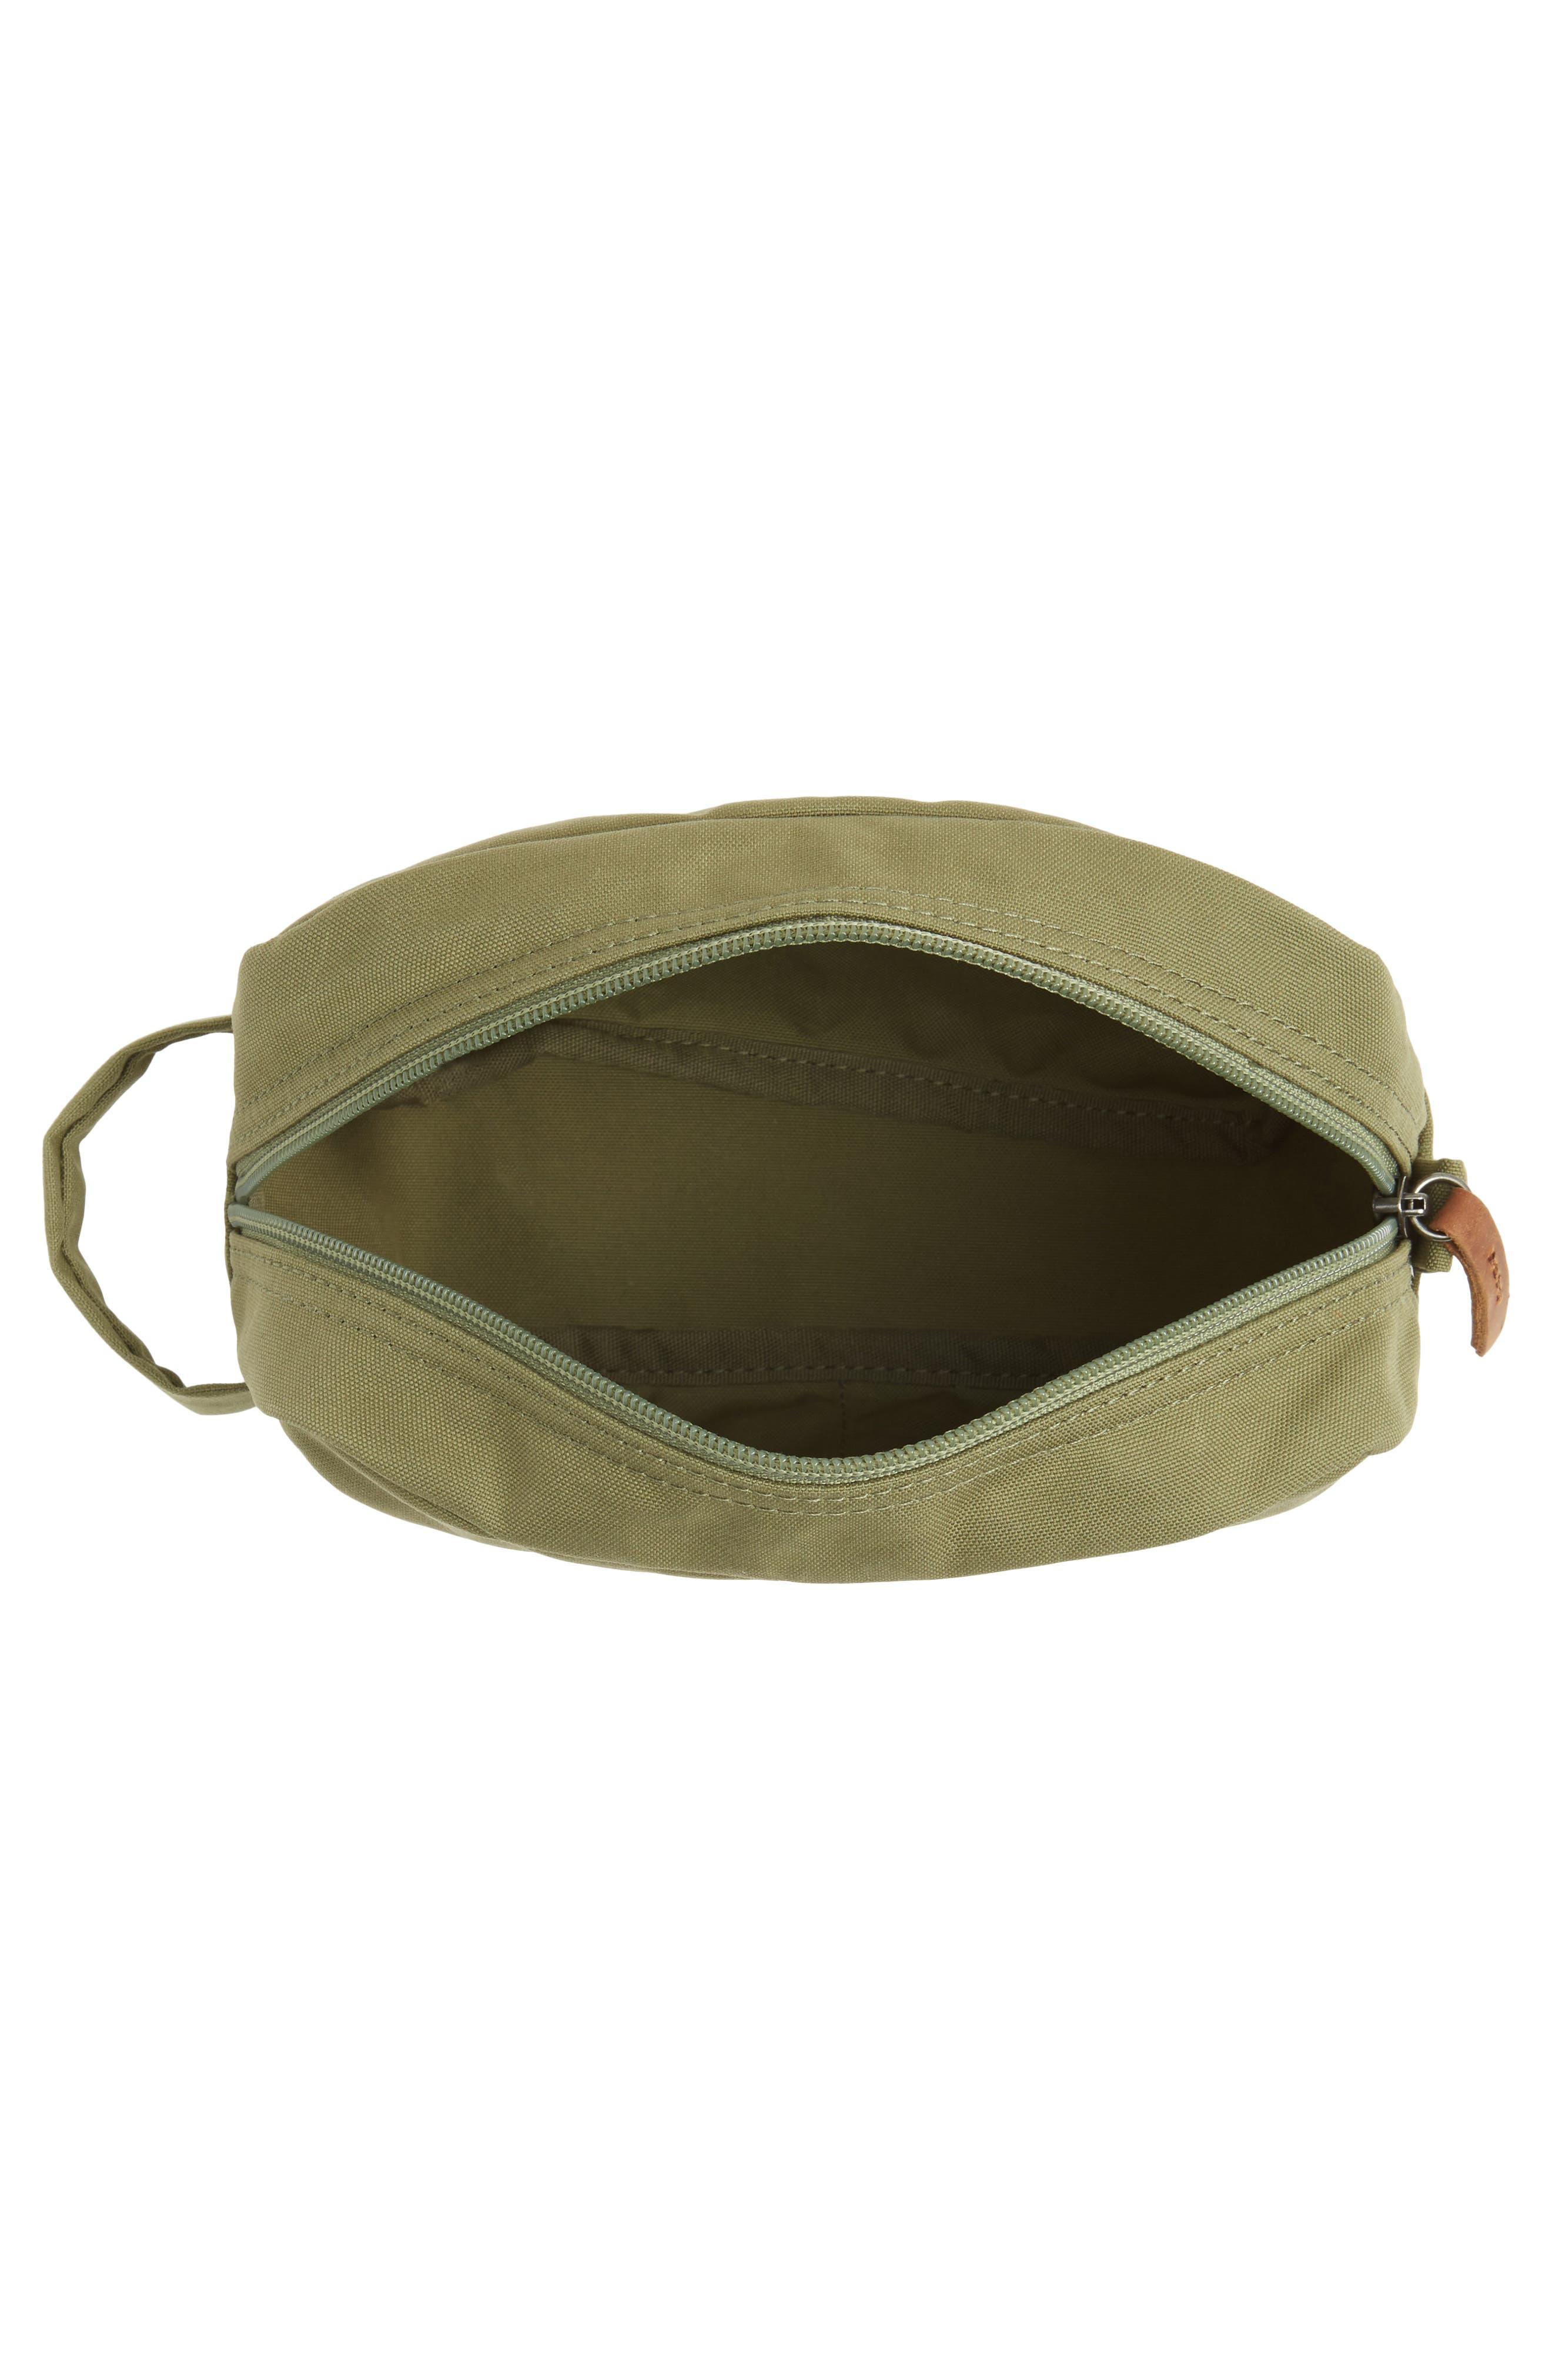 Water Resistant Gear Bag Pouch,                             Alternate thumbnail 3, color,                             Green